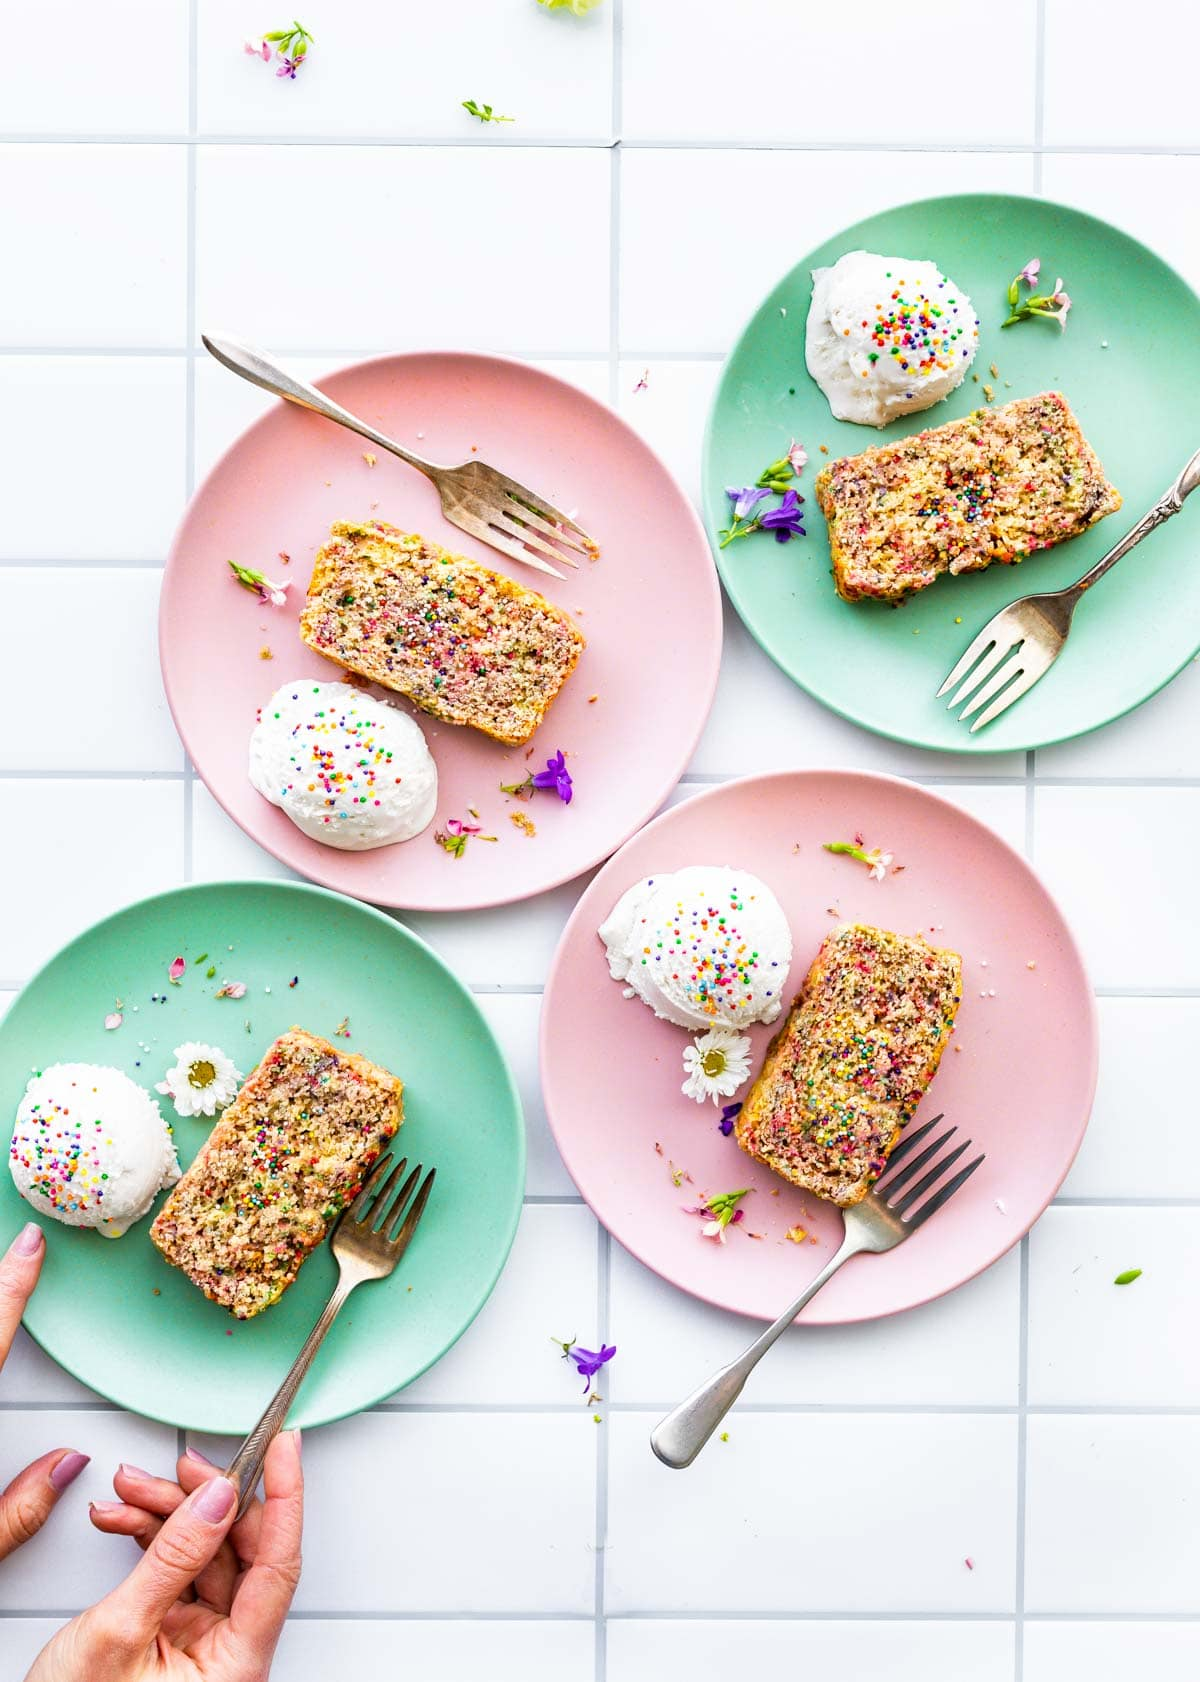 ice cream bread with colored sprinkles on mint green and pink plates with a fork